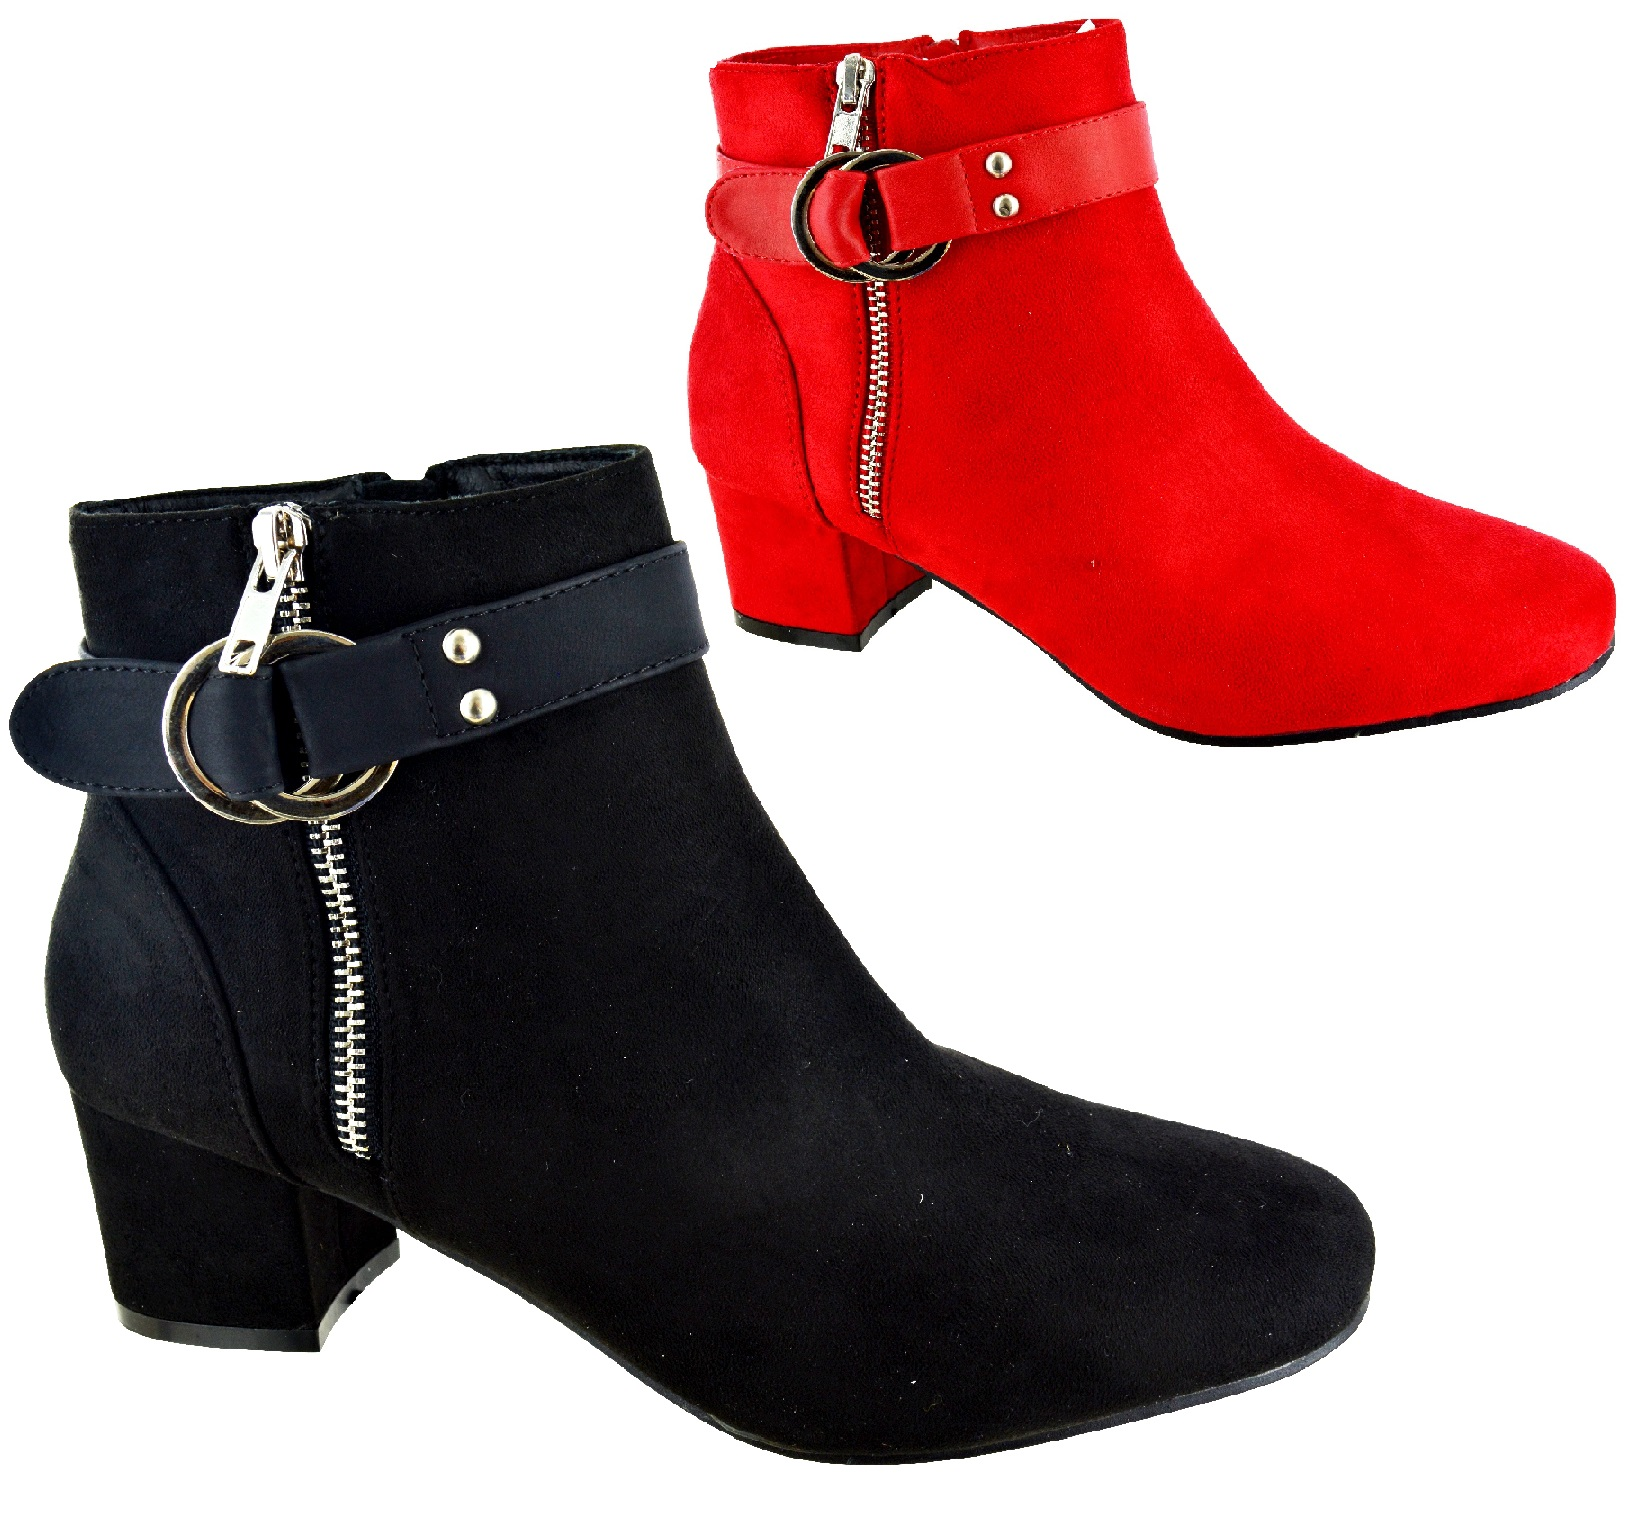 New Womens Ankle Boots High Block Heel Buckle Zip Casual Ladies Shoes Sizes 3-8